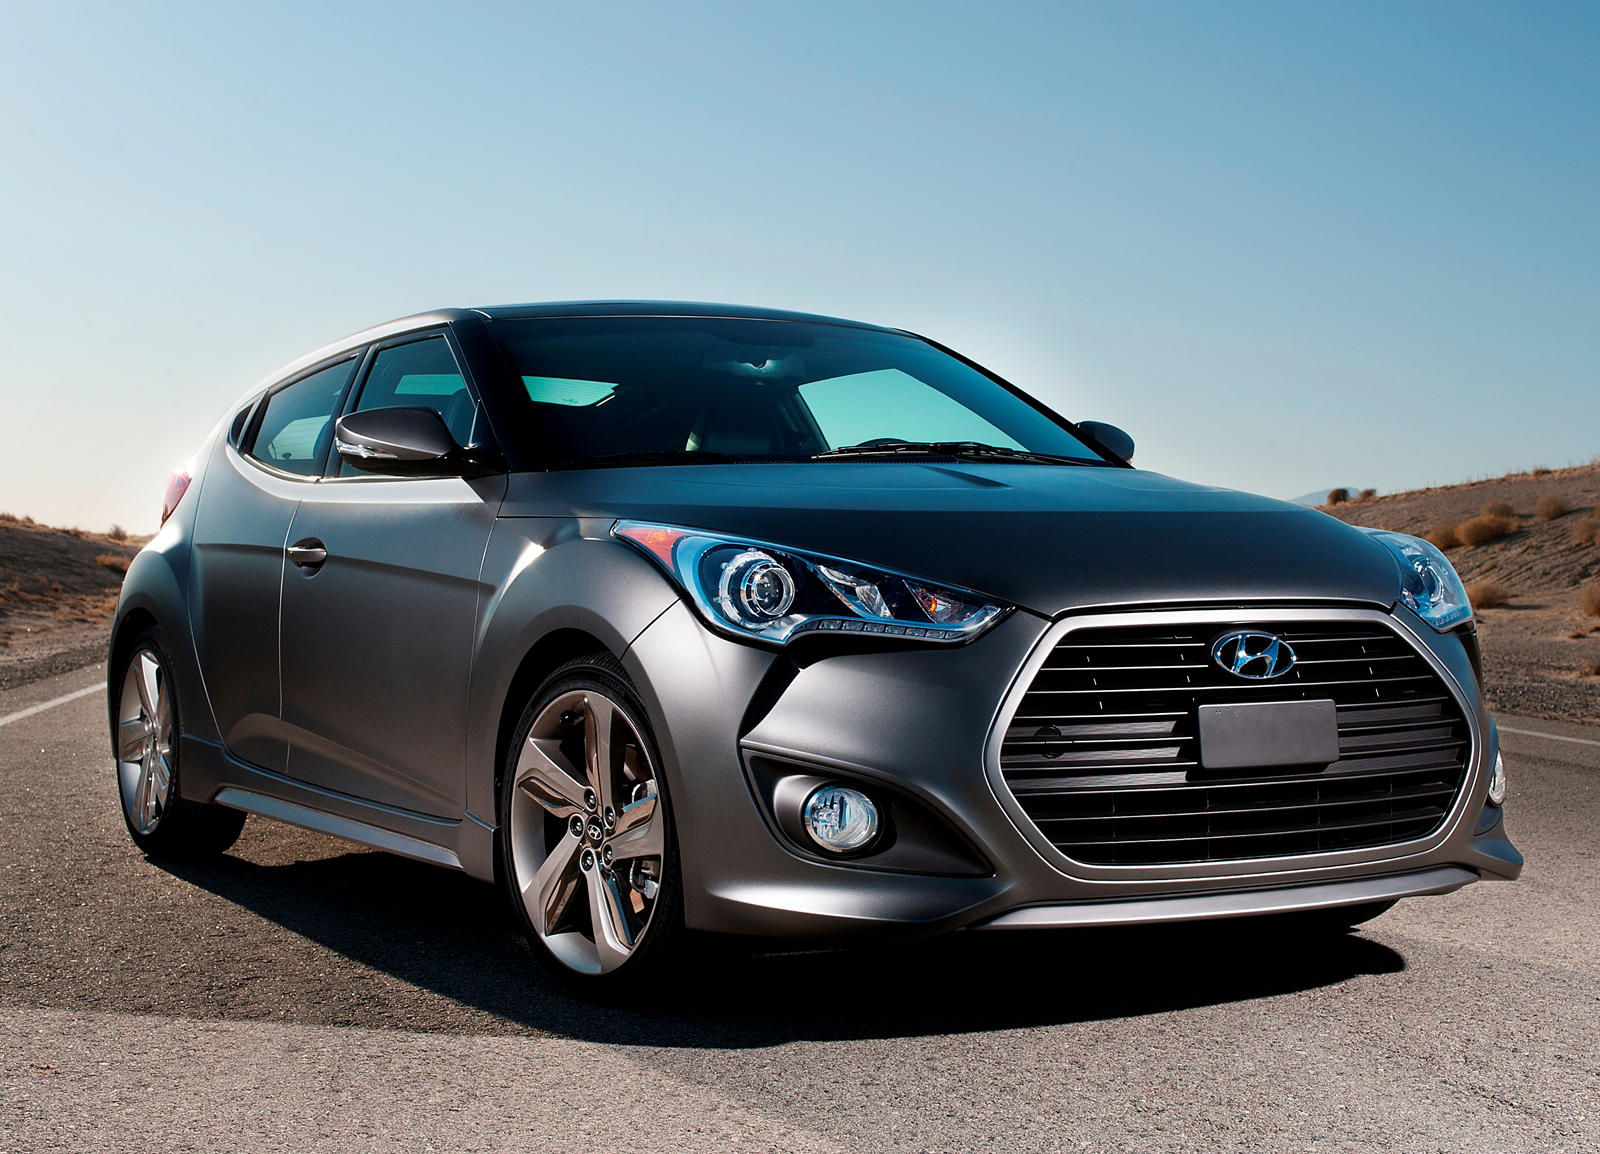 A Bad Software Update Could Cause Hyundai Veloster Engine